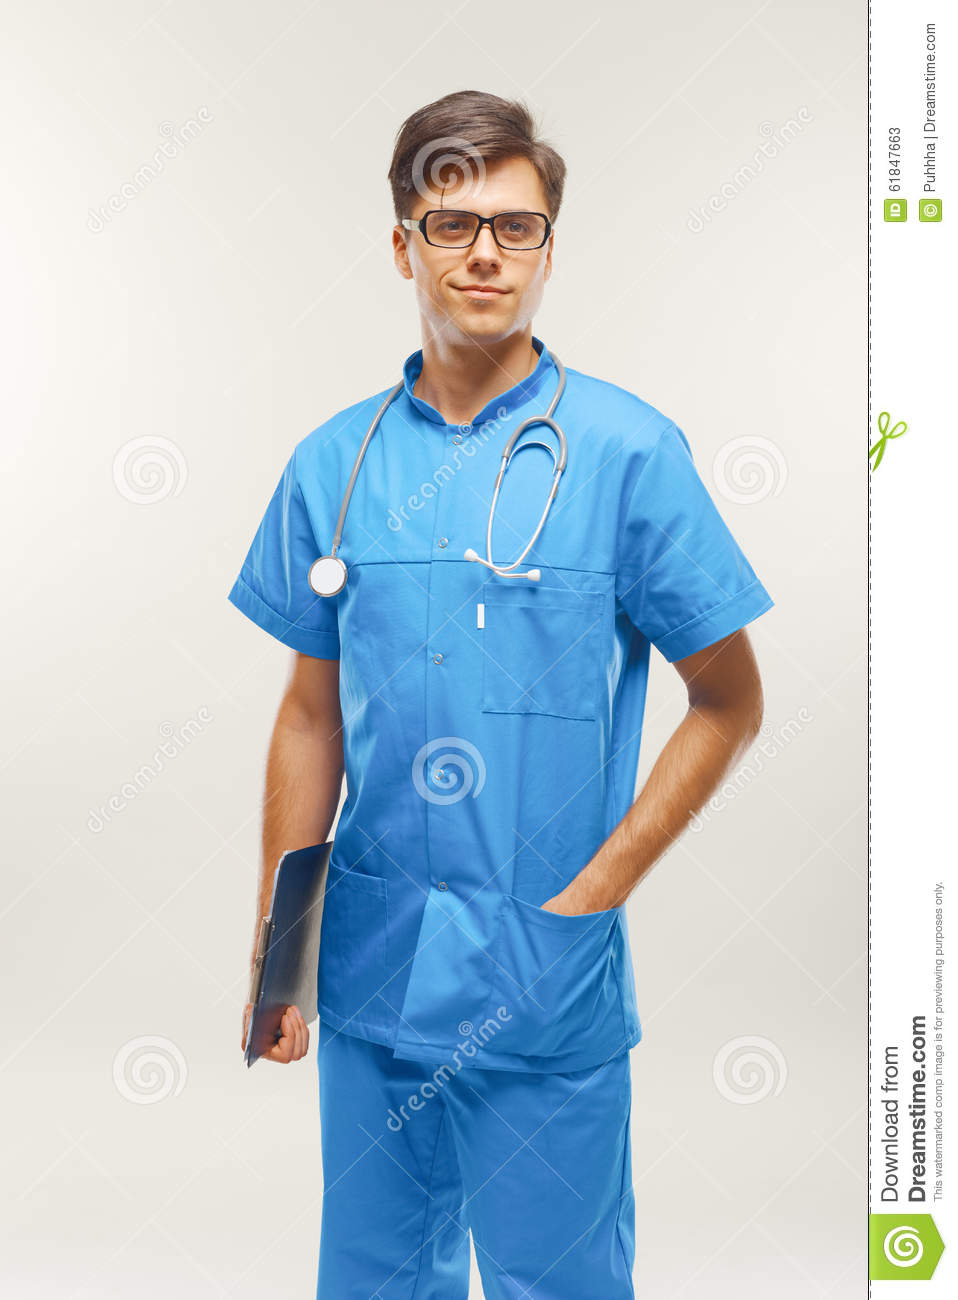 Docteur With Stethoscope Around son cou contre Grey Background